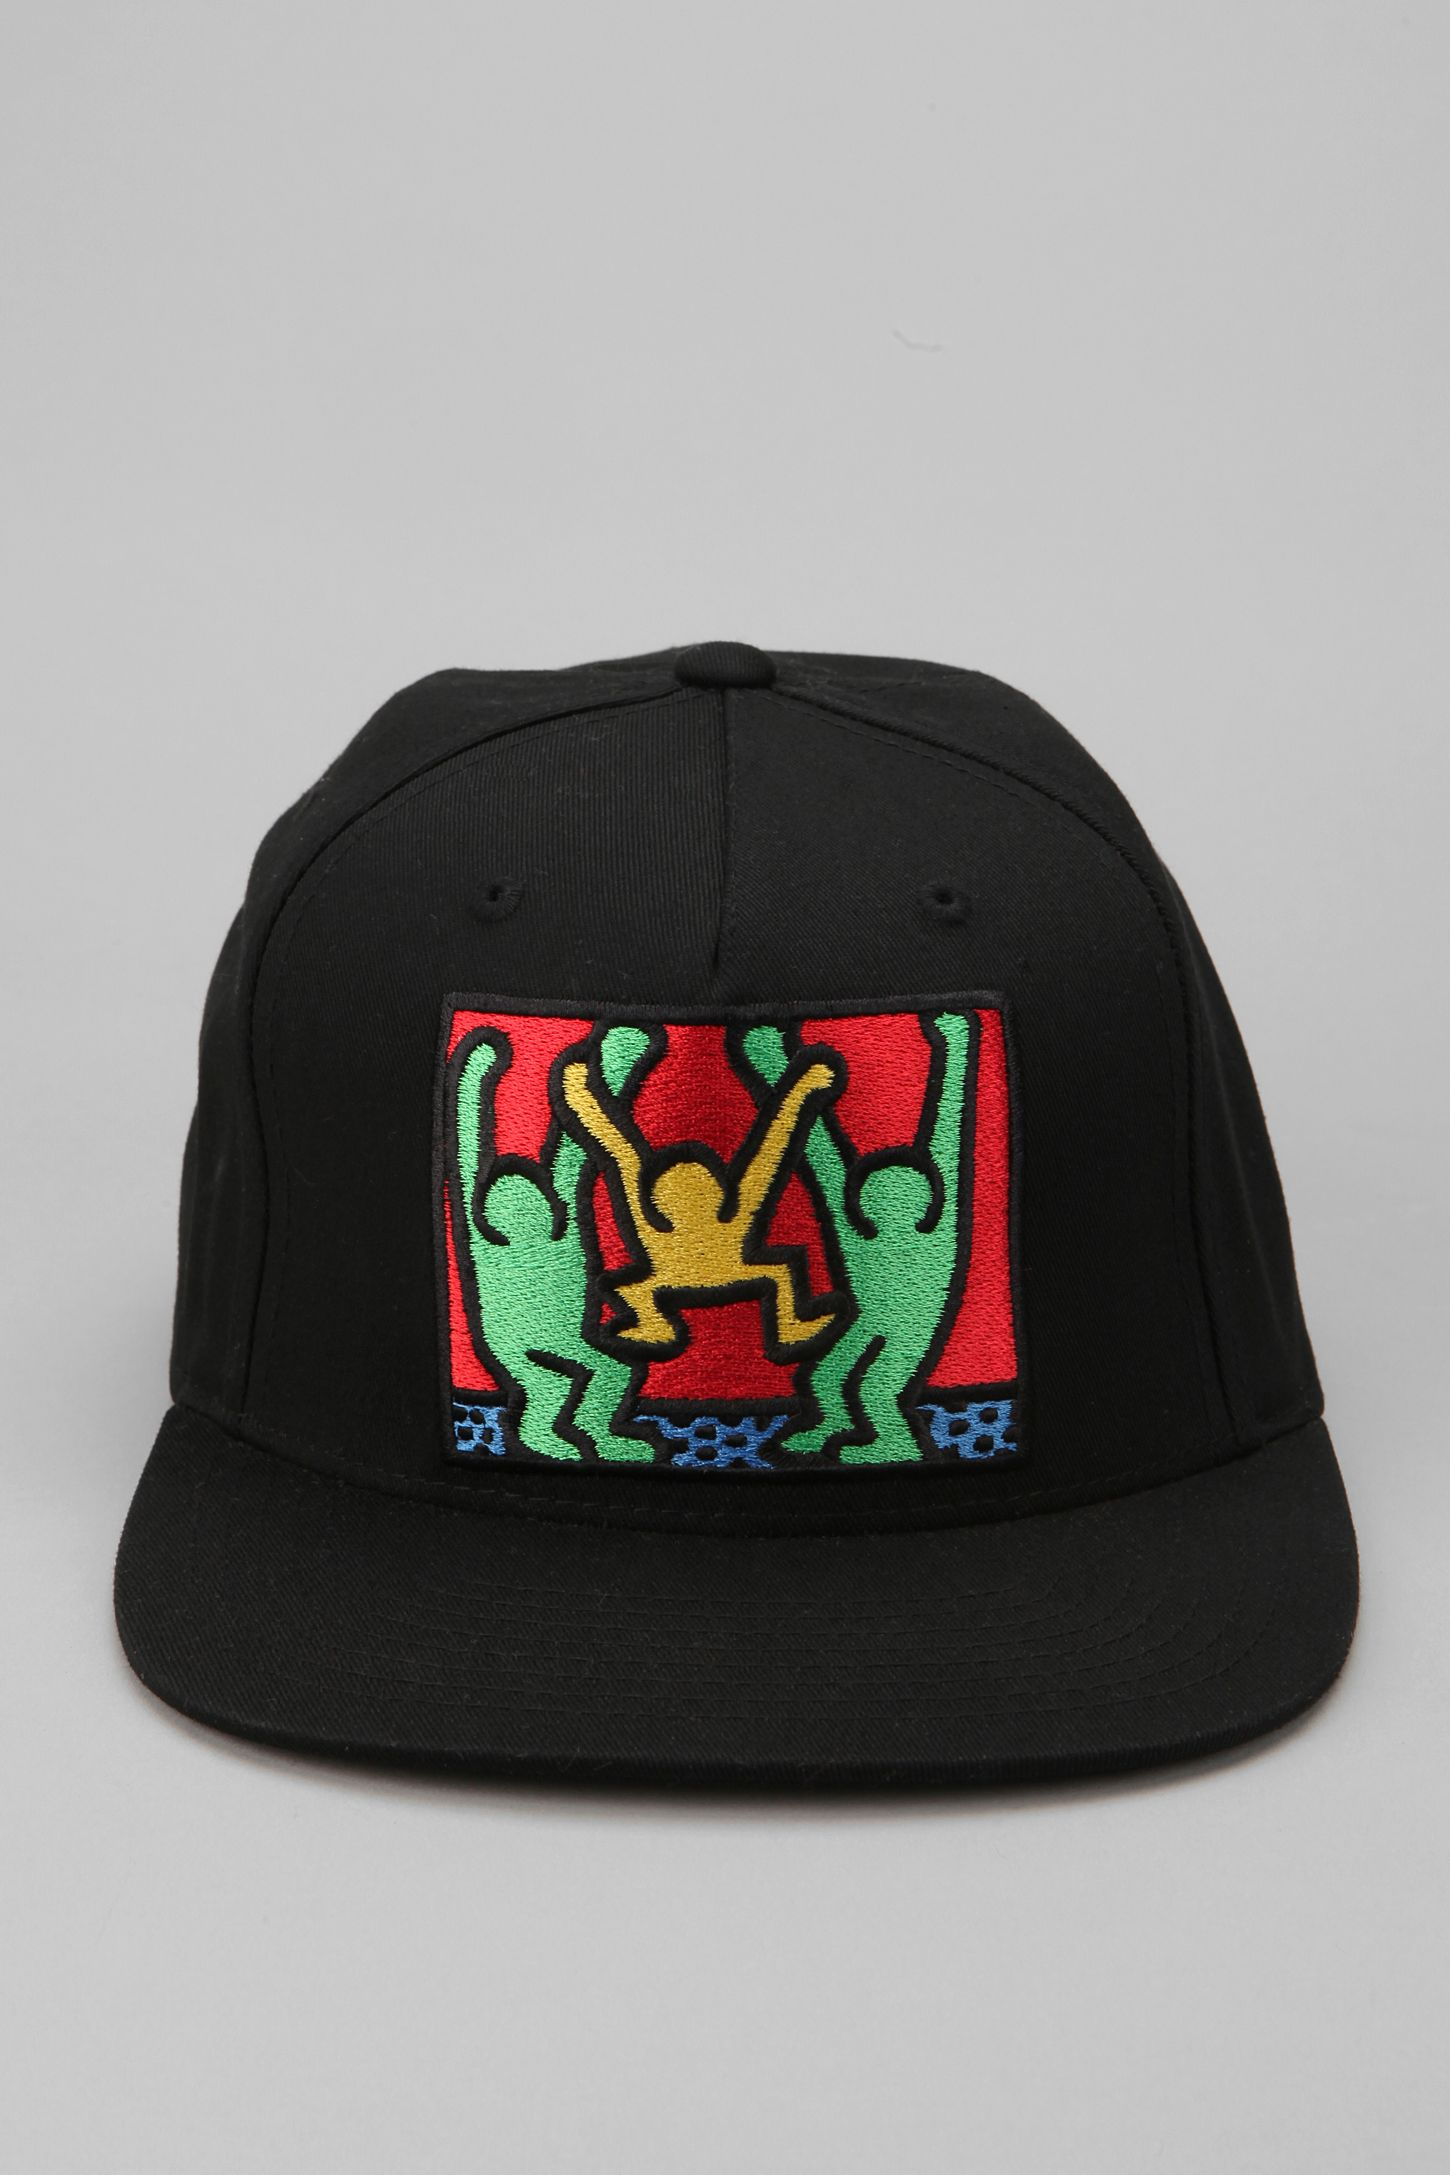 OBEY Keith Haring Friends Snapback Hat  c6f8b401776